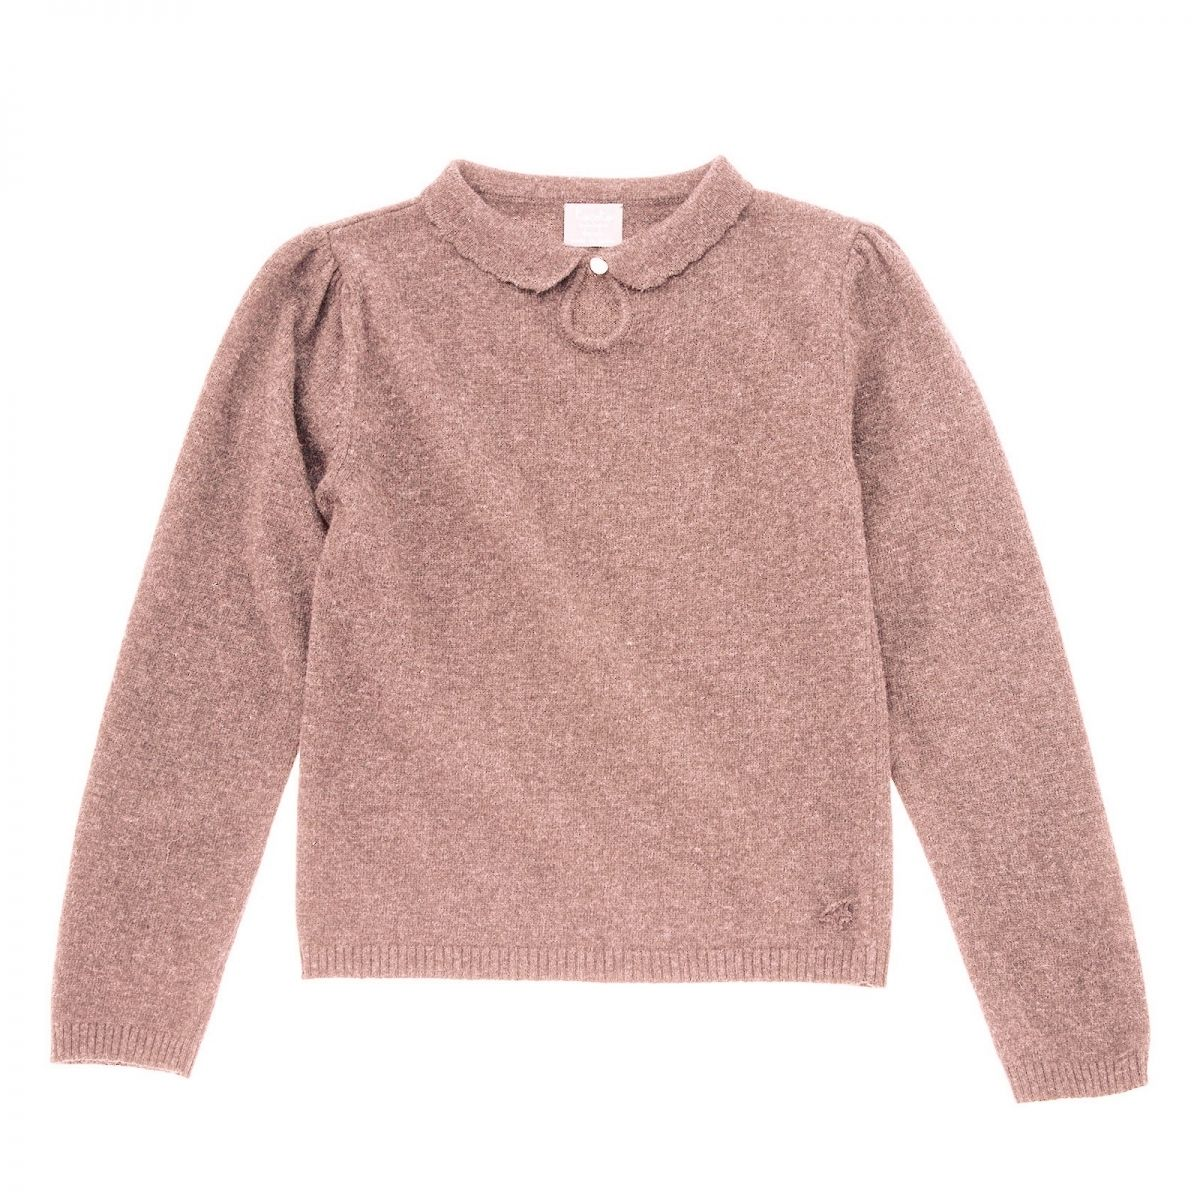 Tocoto Vintage - Knitted sweater pink - 1